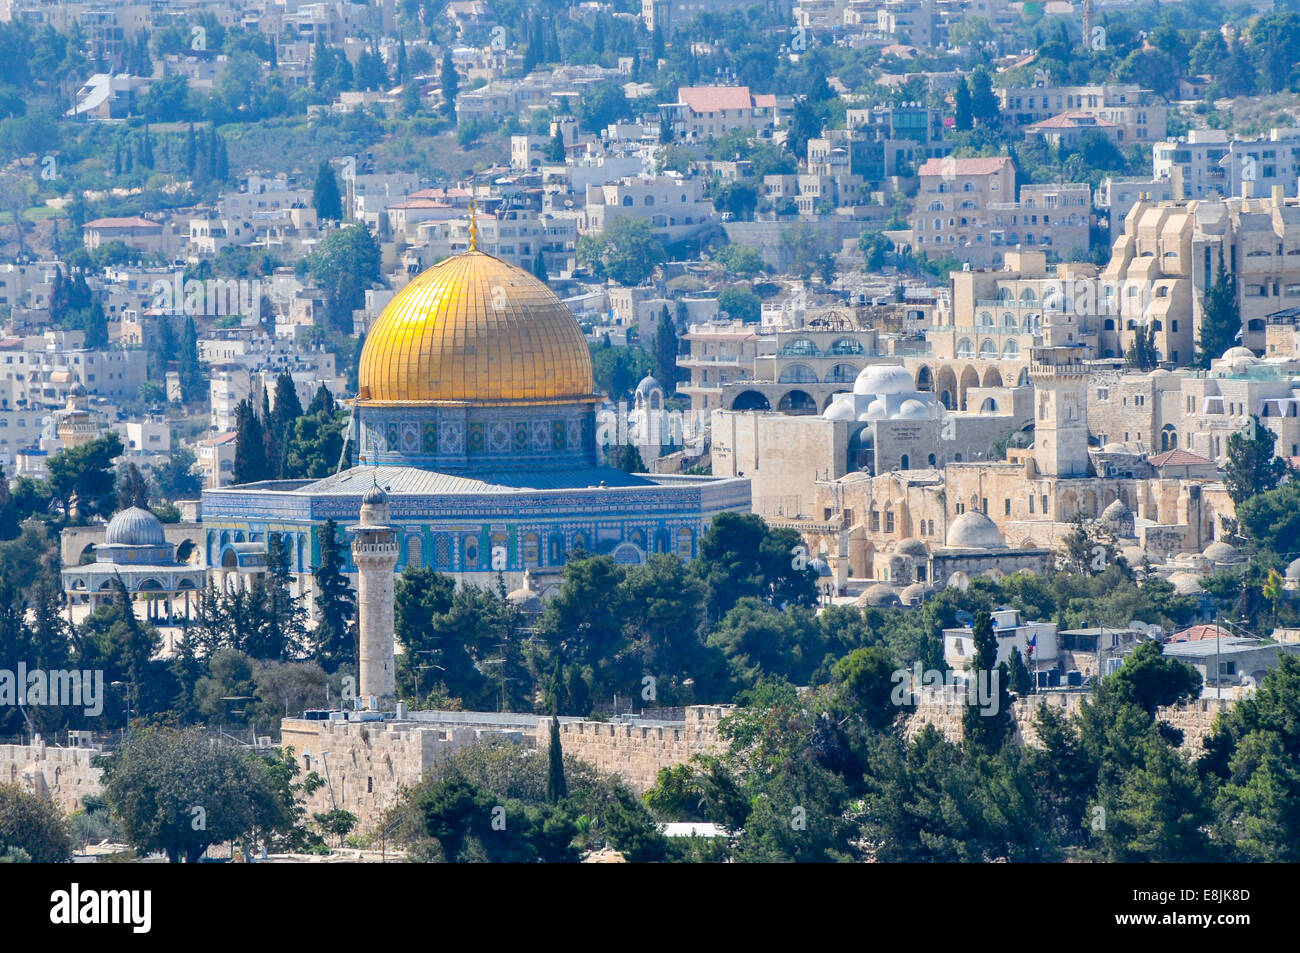 View of the Dome of the Rock on Temple Mount, as seen from the Zeevi observation point on Mount Olives, Jerusalem, Stock Photo